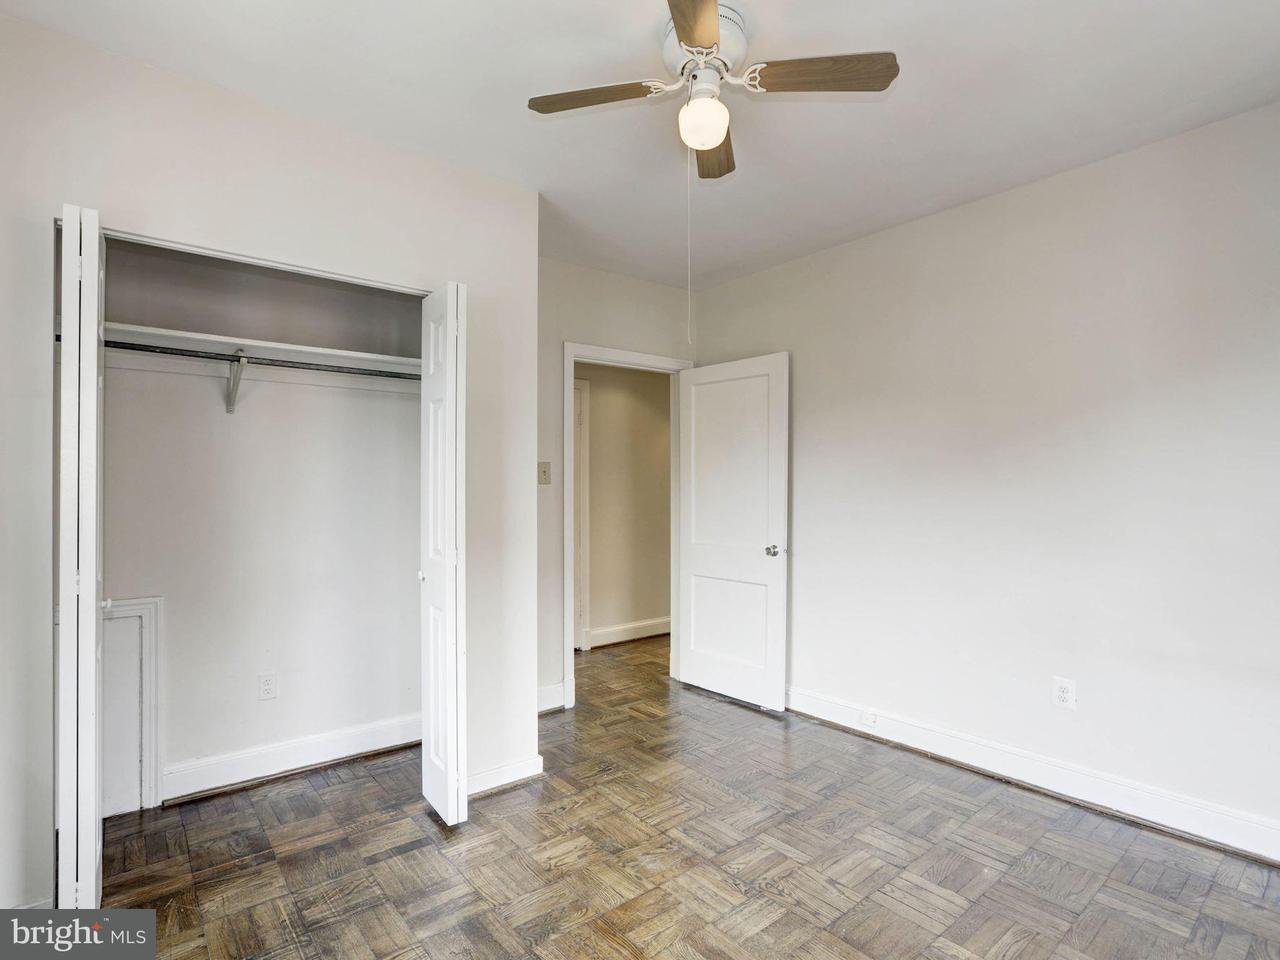 Additional photo for property listing at 4471 Macarthur Blvd NW #301  Washington, District Of Columbia 20007 United States